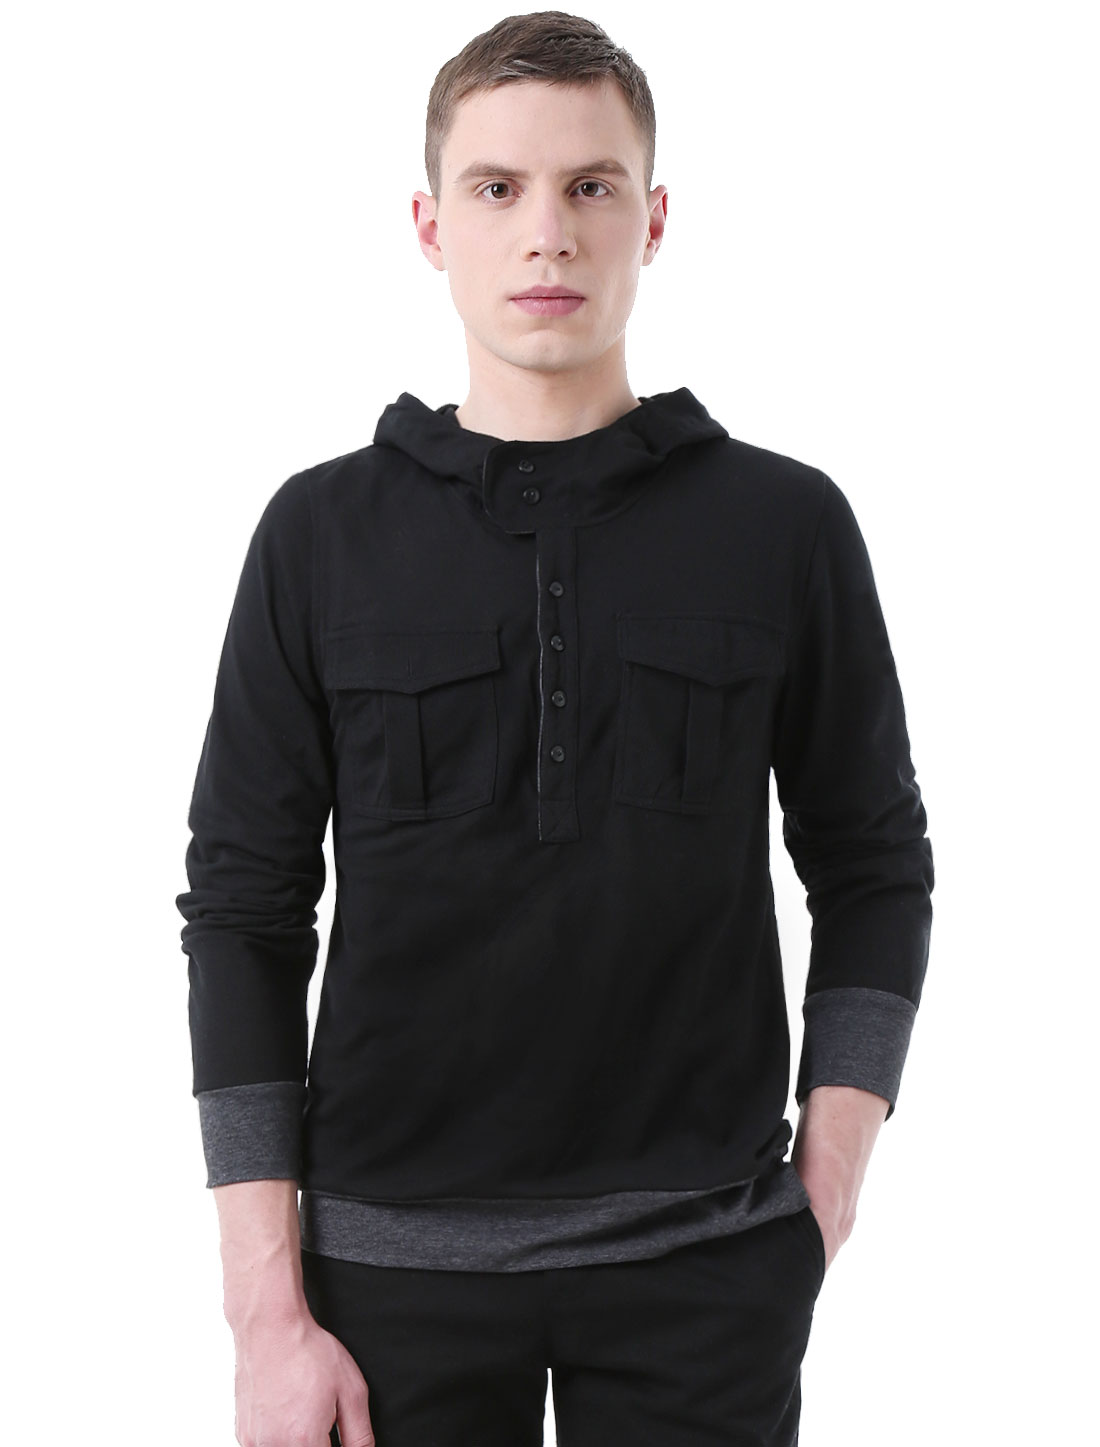 Men Long Sleeves Half Placket Slim Fit Hoodie Shirt Black M